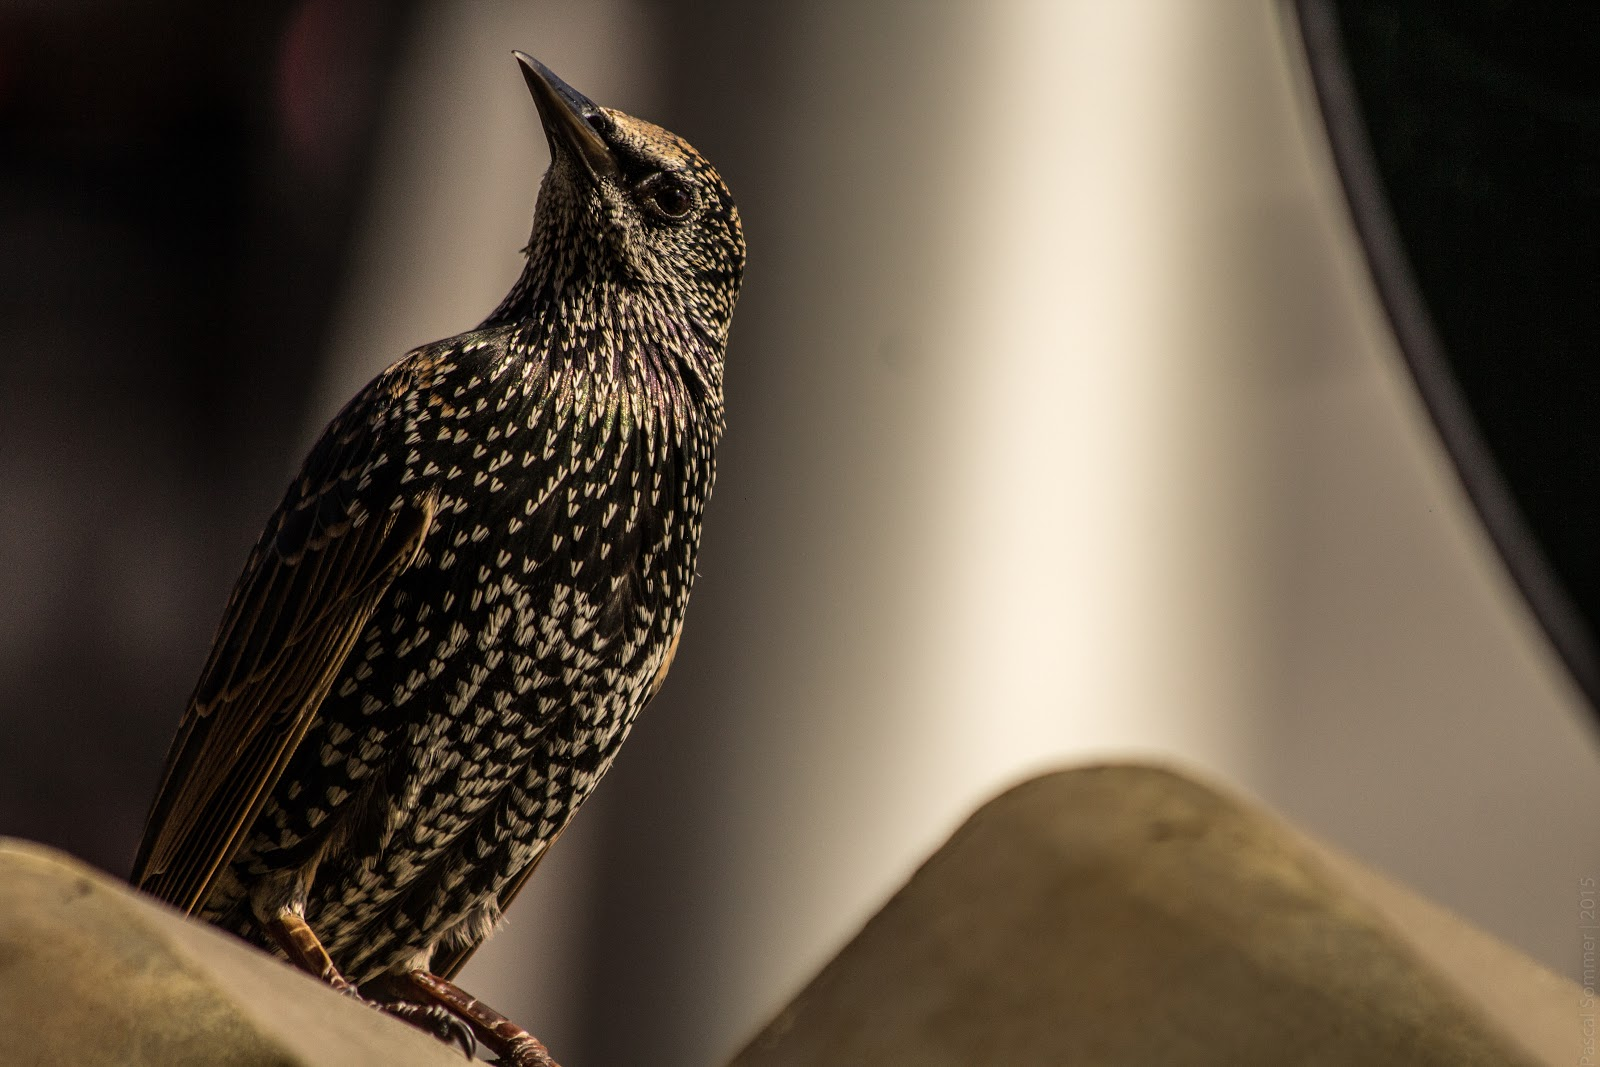 Photo by Pascal Sommer - A bird waiting for tourists to drop some of their food in Camden Town